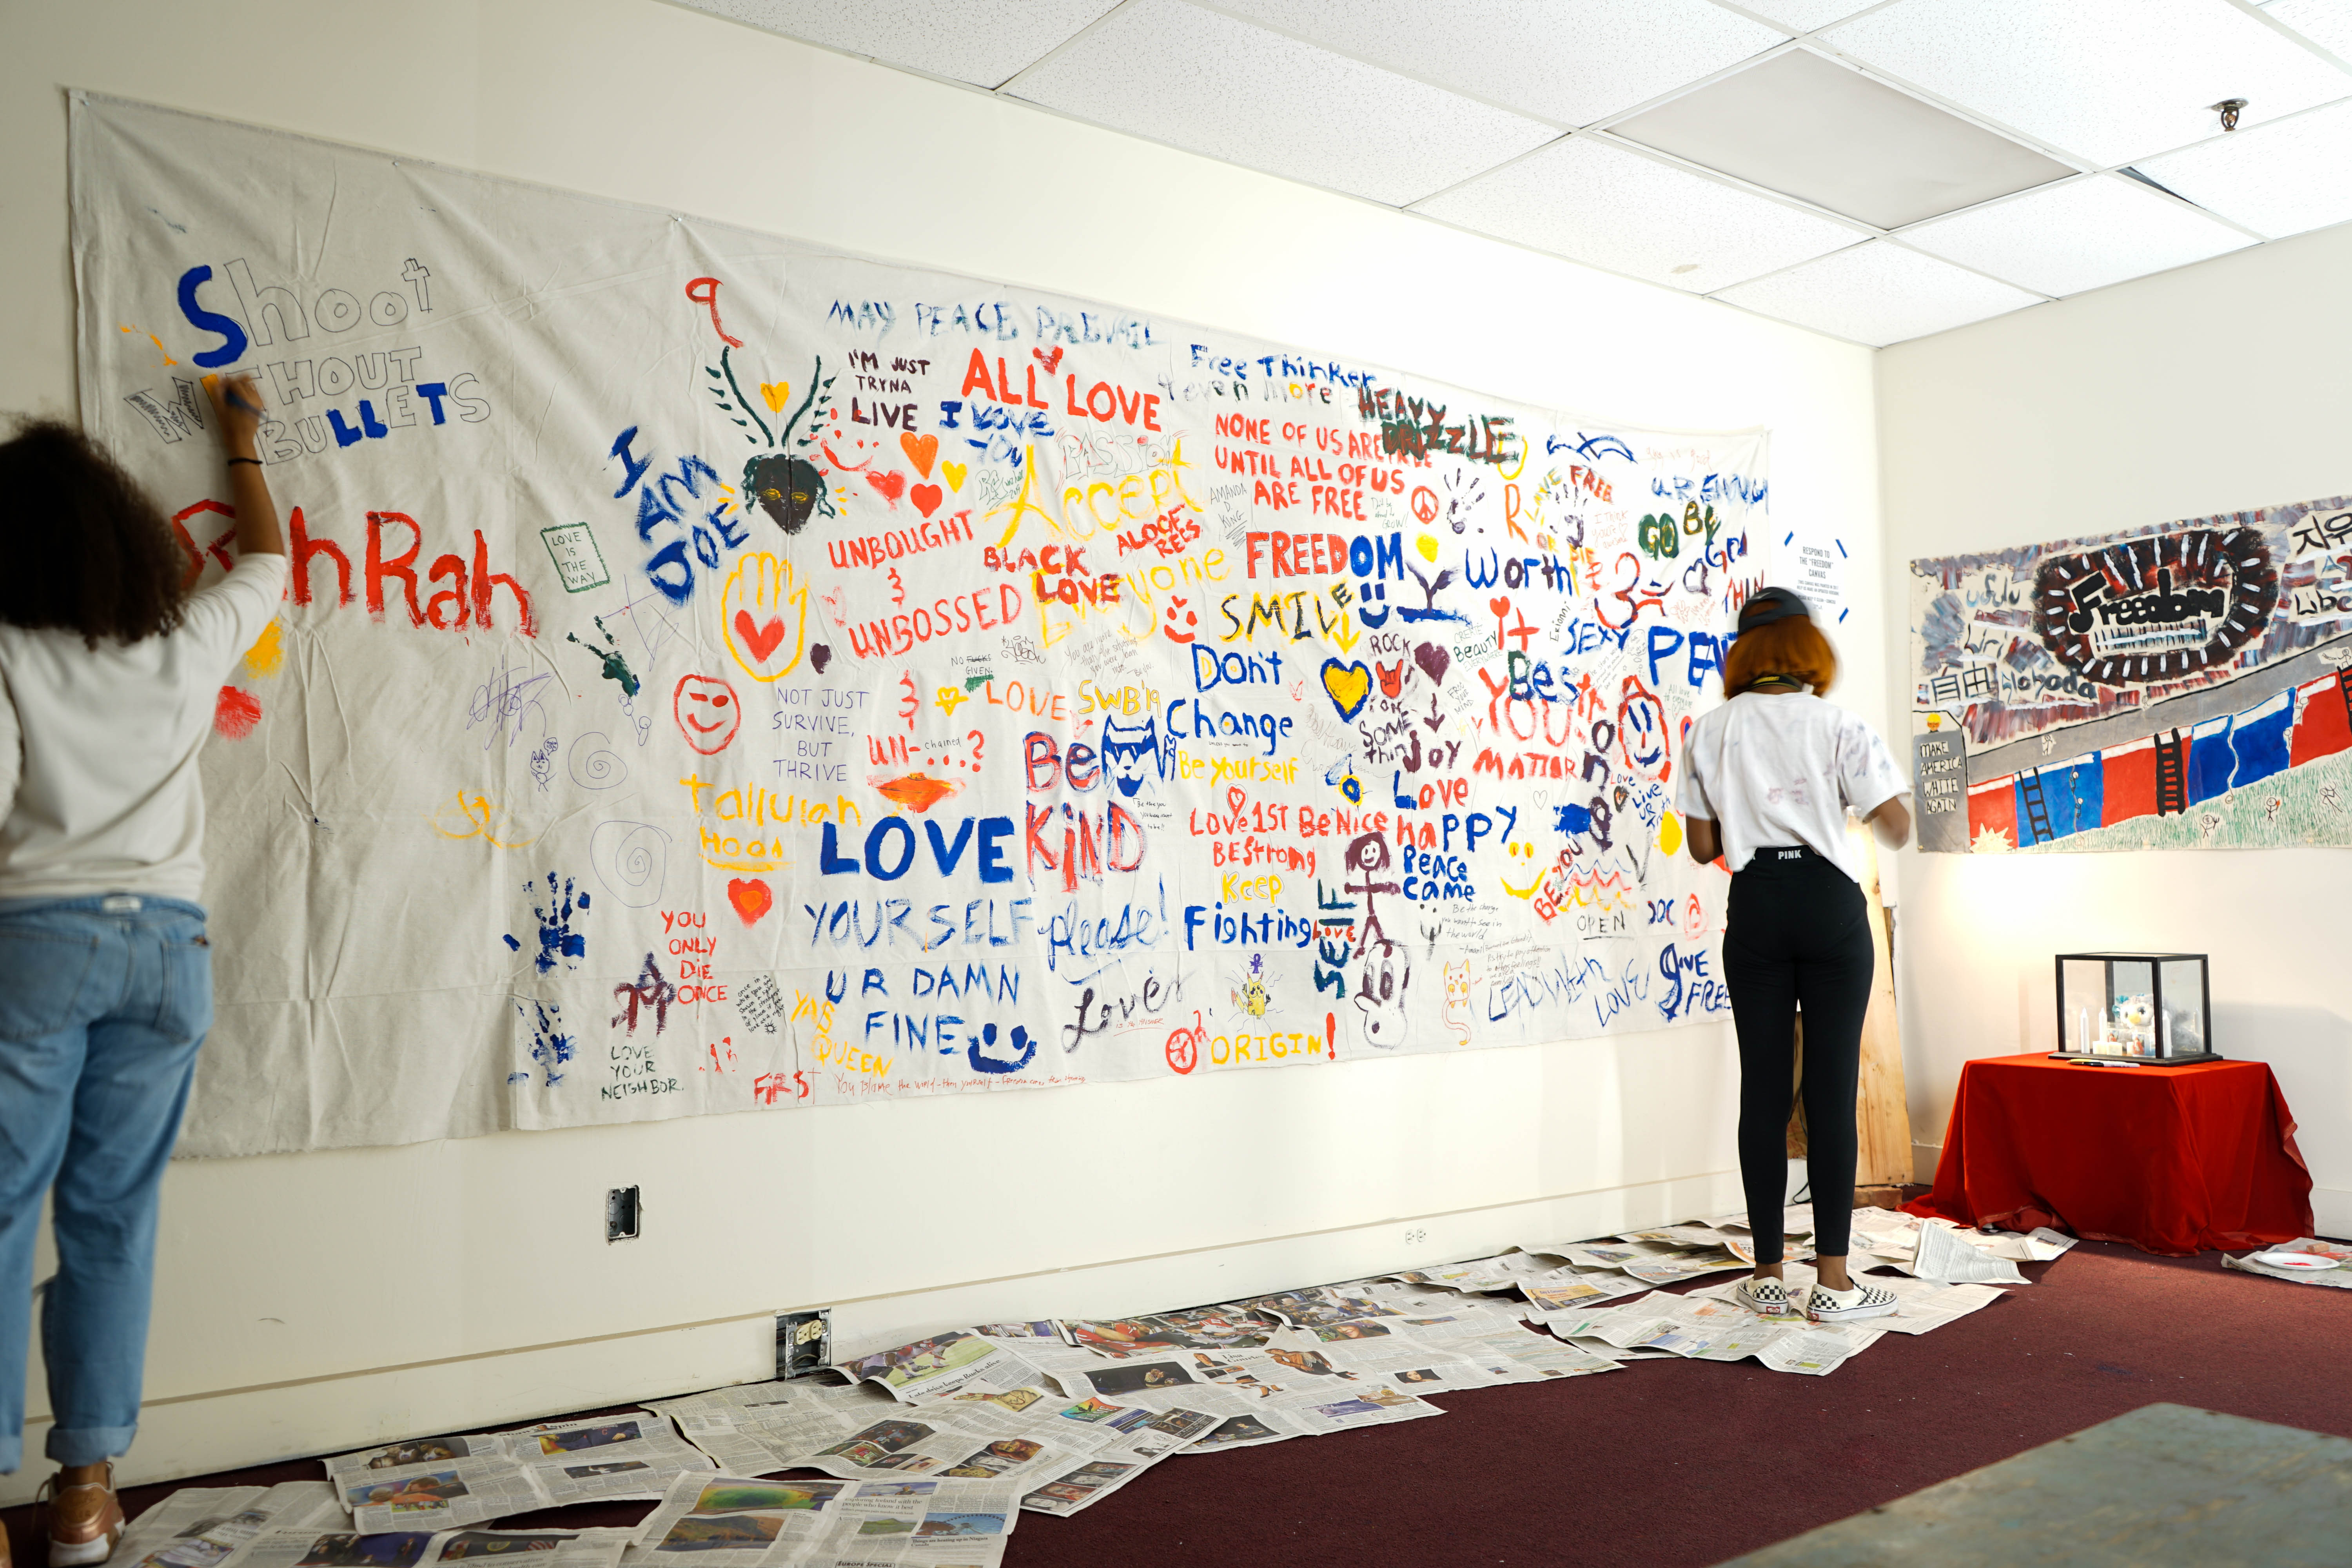 People painting words on canvas